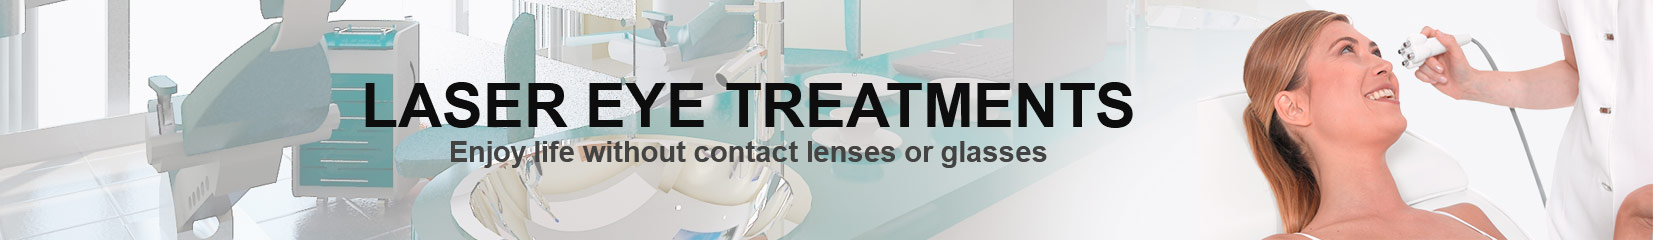 laser-eye-treatment-banner